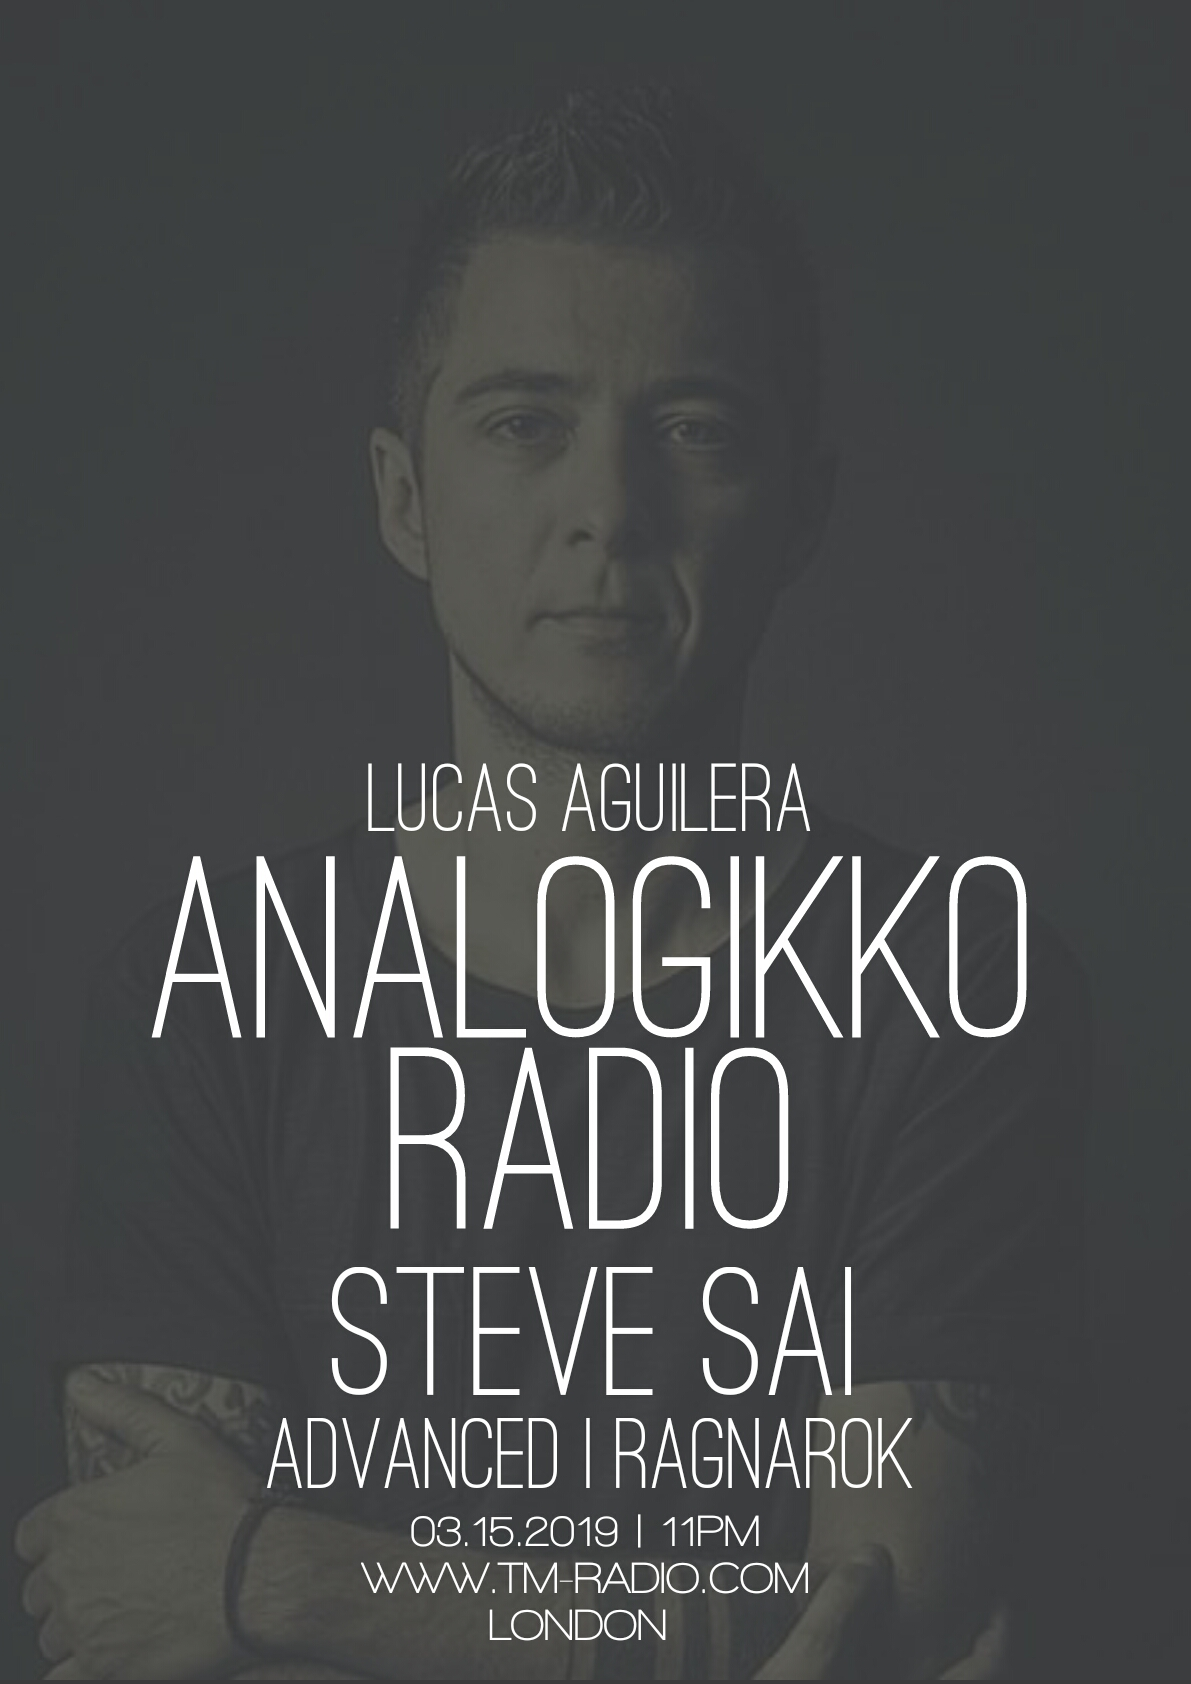 ANALOGIKKO RADIO BY LUCAS AGUILERA - STEVE SAI - GUEST MIX - TM RADIO - Episode 053 (from March 15th, 2019)